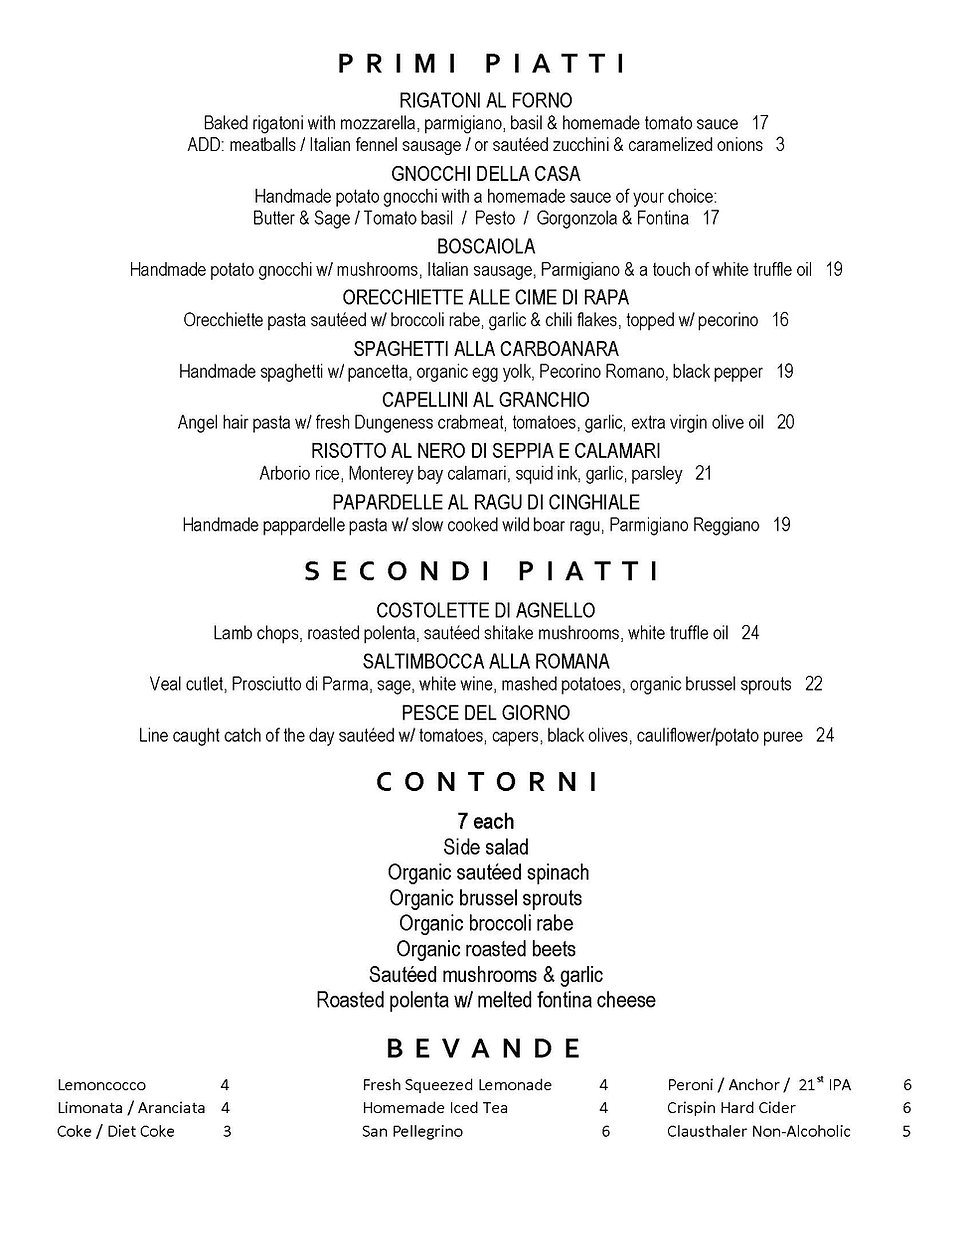 VEGAPIZZERIA Menu Current_Page_2.jpg